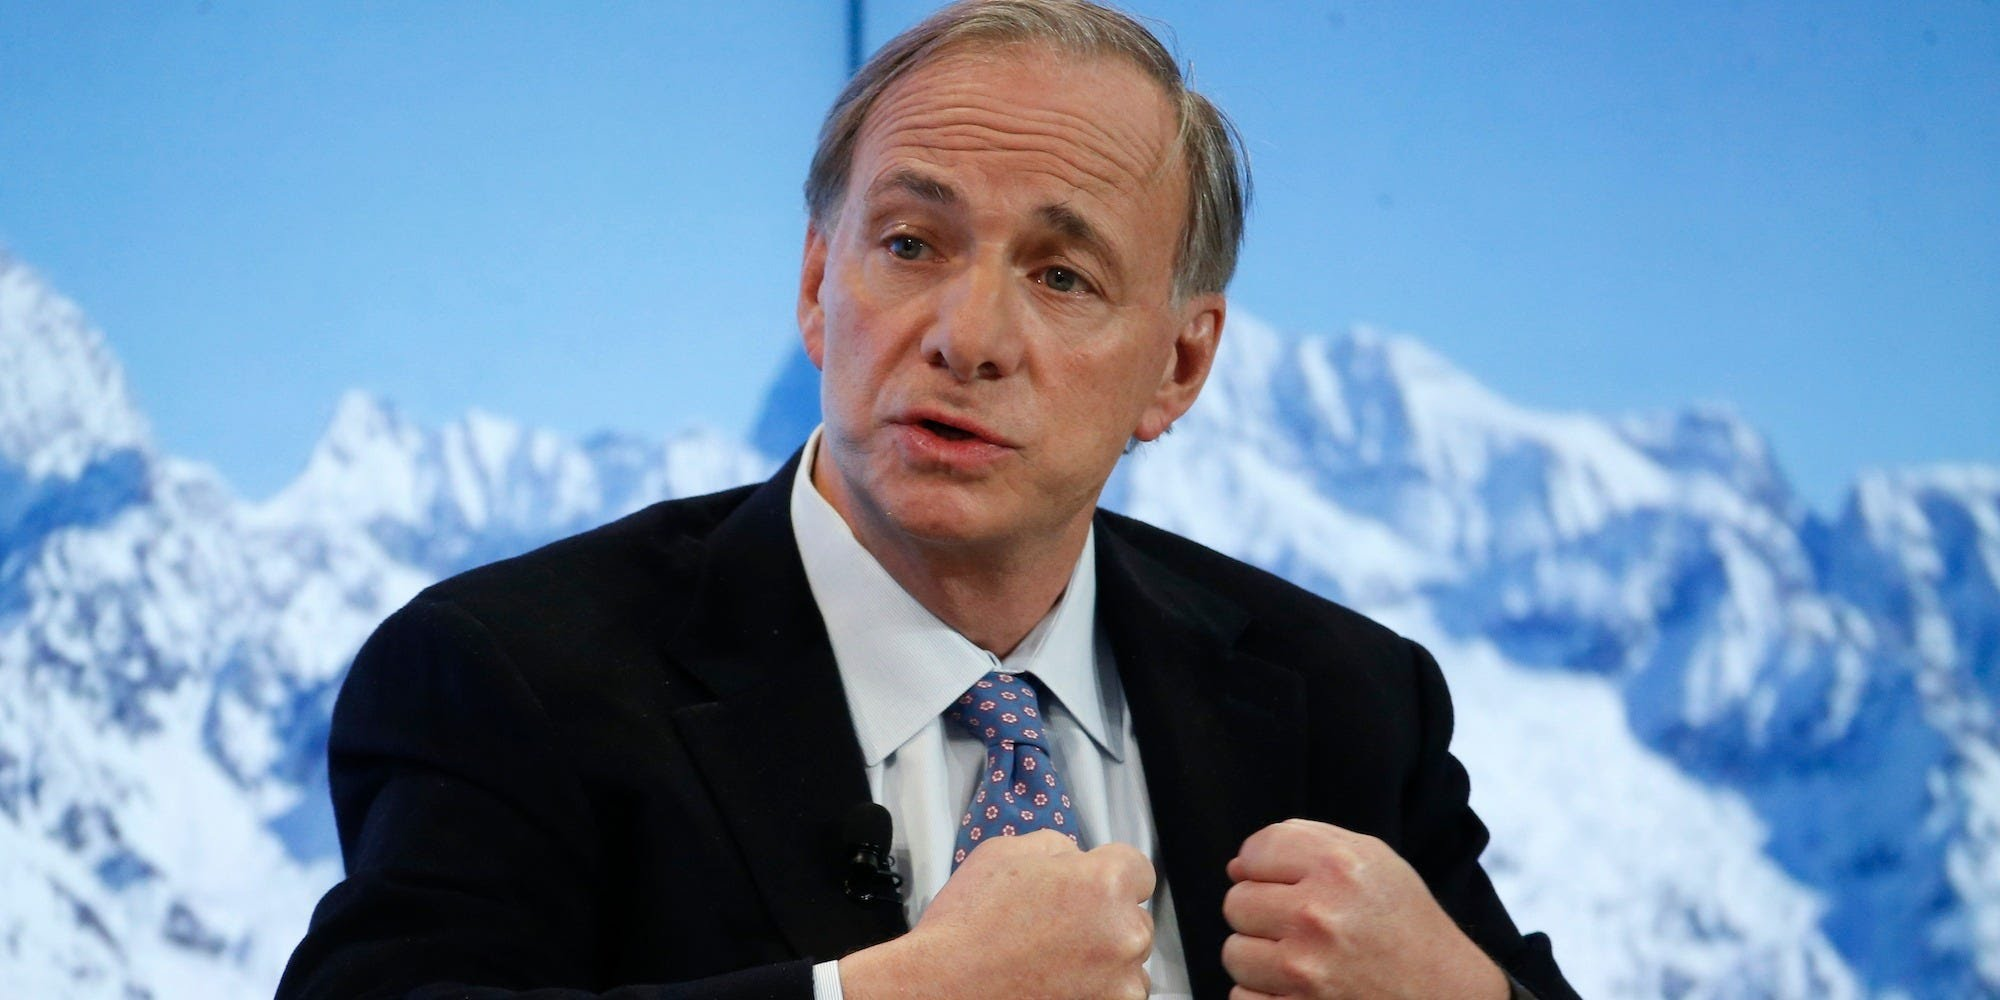 US-China economic warclosely resembles situation beforeWorld War II, US economist & investor Ray Dalio warns